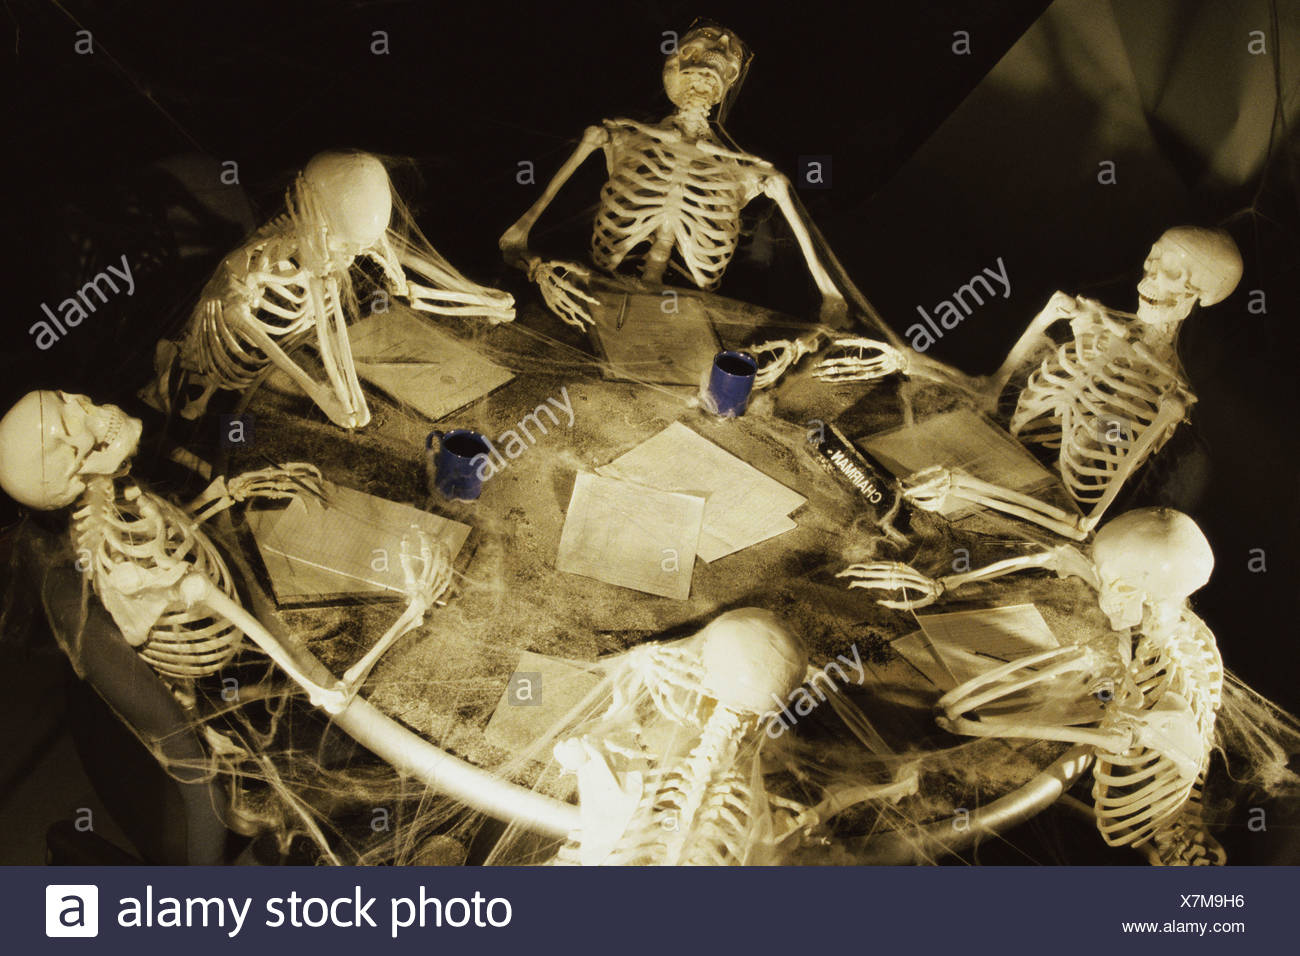 Human Skeletons Covered In Cobwebs At A Meeting Stock Photo